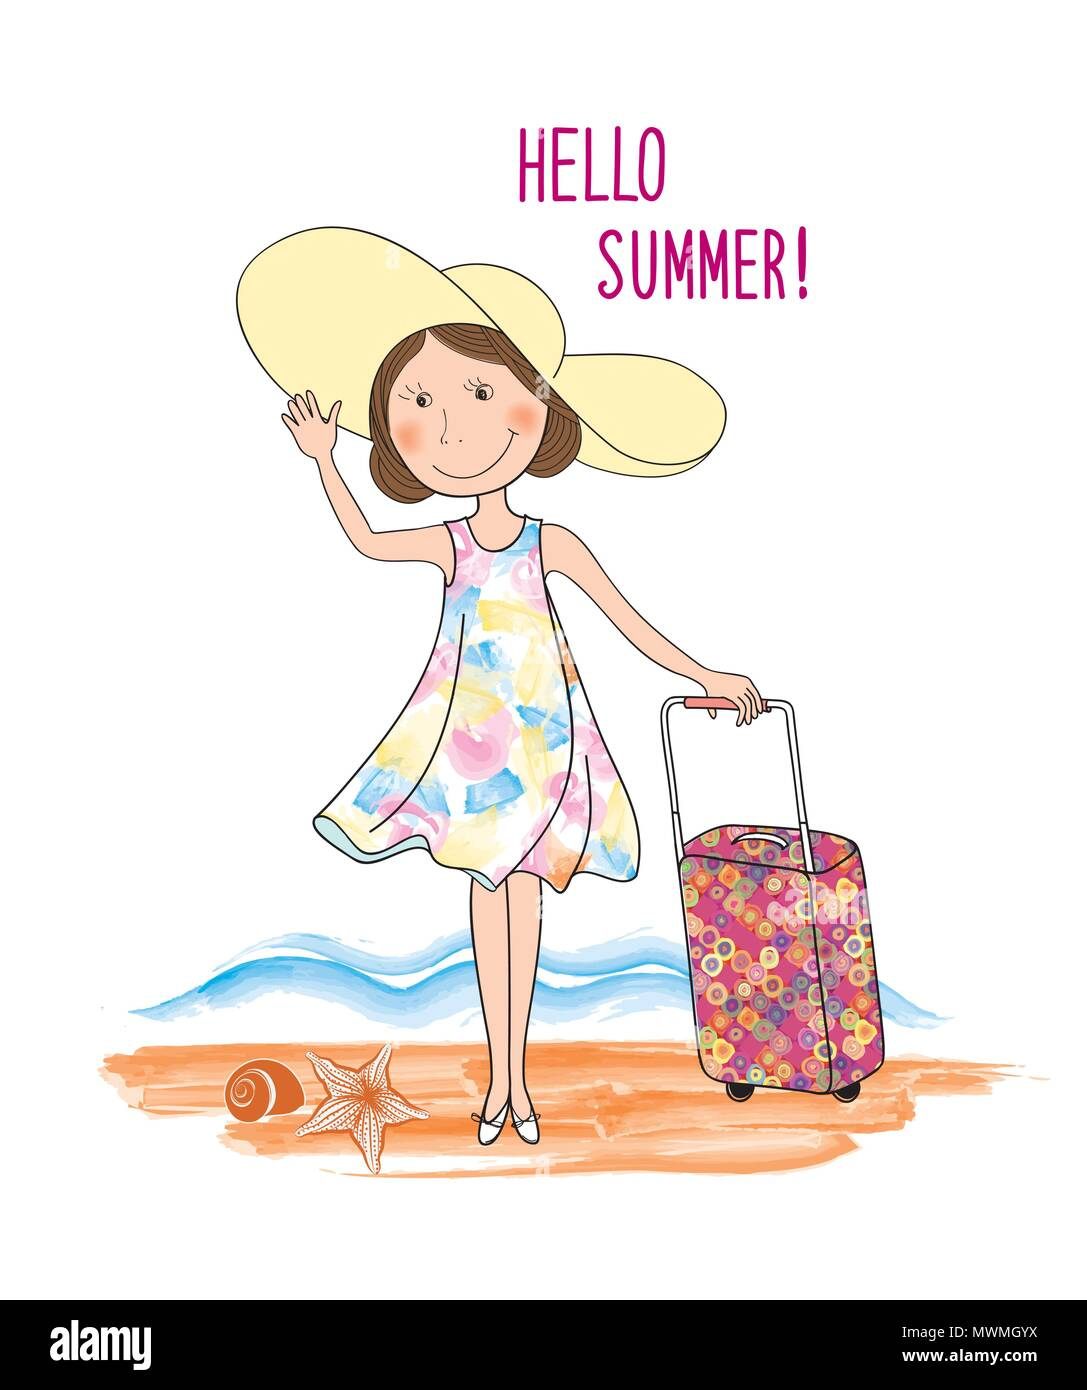 Summer travel card background. Lettering HELLO SUMMER and girl with hat, suitcase tourist luggage over seaside view. Beach resort landscape Stock Vector